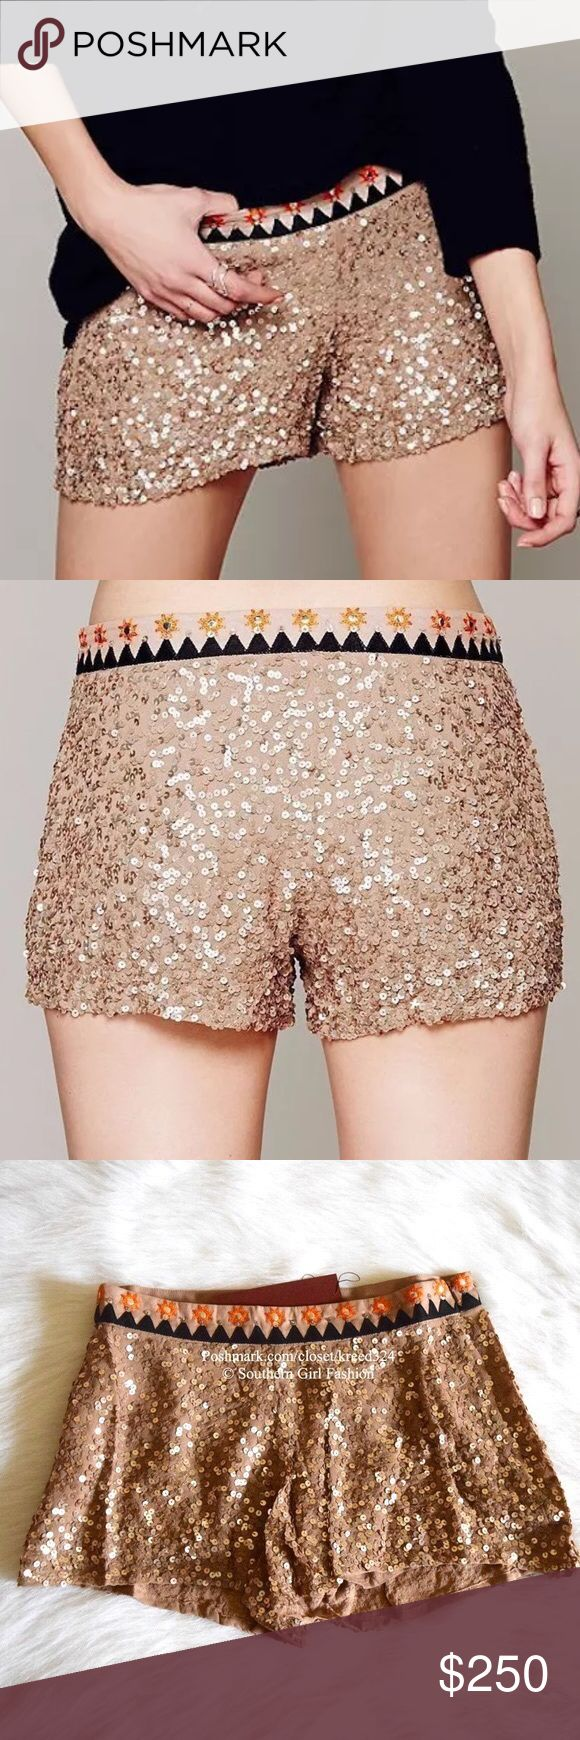 FREE PEOPLE Shorts Embroidered Mirror Sequin Boho Available Sizes: XS, S, M. New with tags.  $198 Retail + Tax.  • Beautiful and sophisticated, these sequin embellished mini shorts feature intricate geometric embroidery at waistline with hidden side zip closure.  • By WILDHEART for Free People. • 100% Rayon. • Measurements are provided in comment(s) section below.  {Southern Girl Fashion - Closet Policy}  ✔️ Same-Business-Day Shipping (10am CT). ✔️ Reasonable best offer considered when…